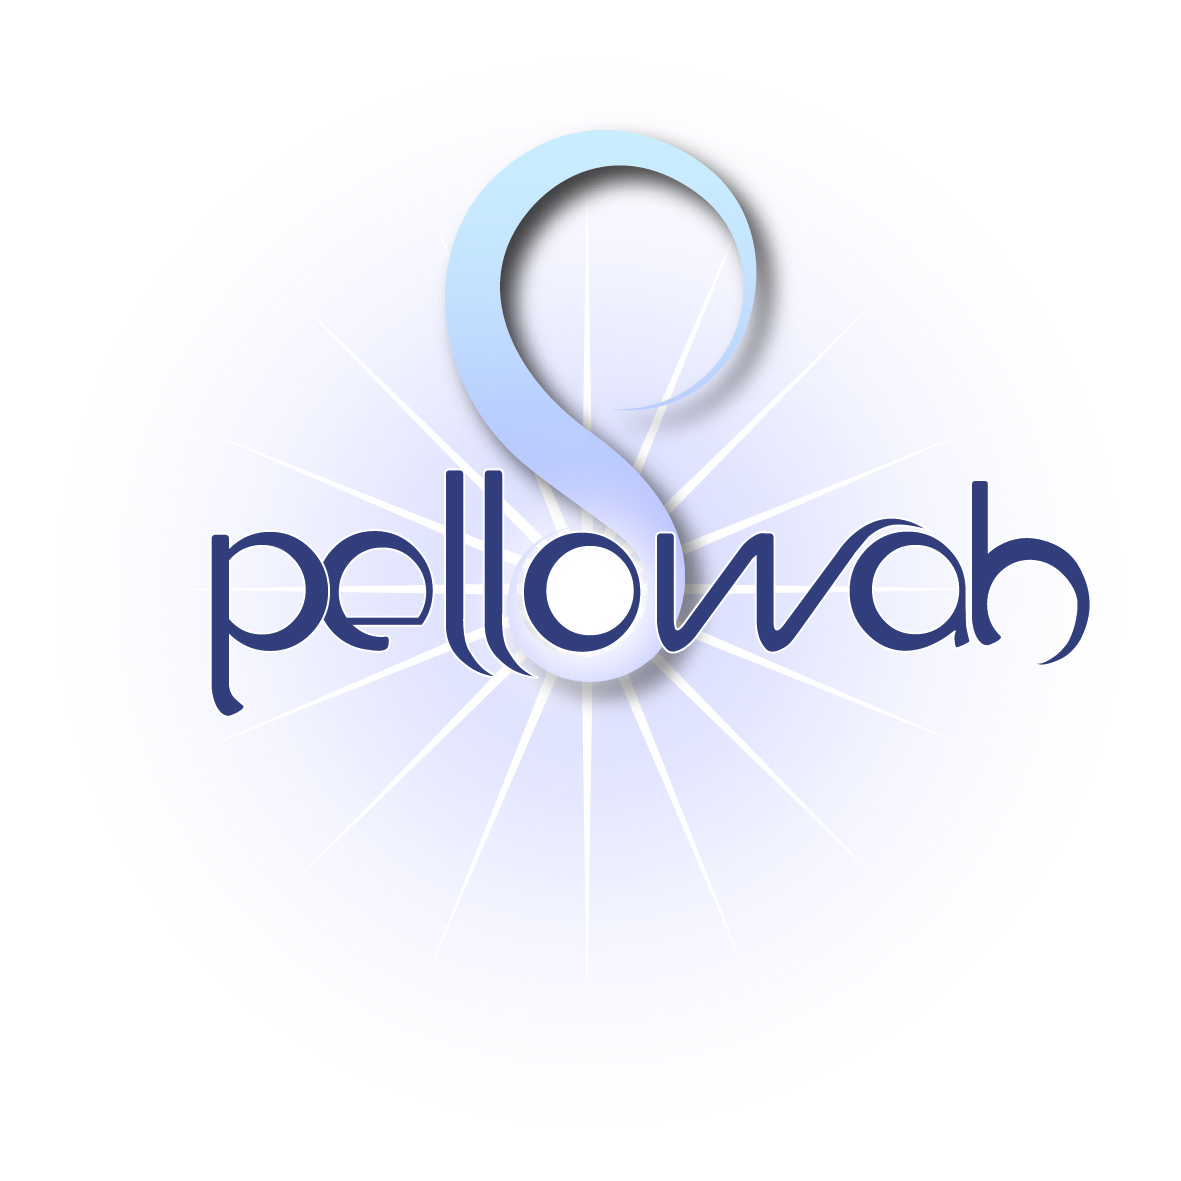 Pellowah Natural Healing energy